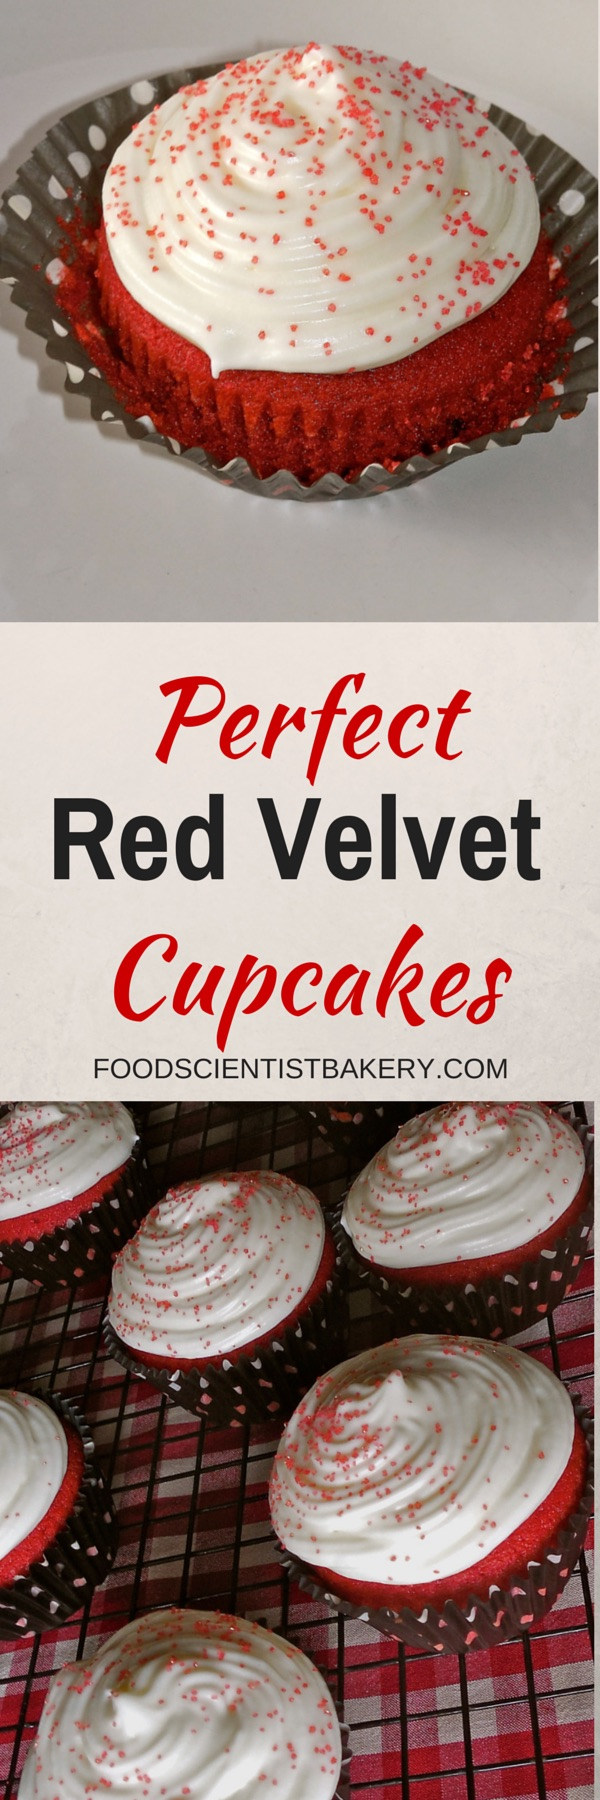 Perfect Red Velvet Cupcakes!